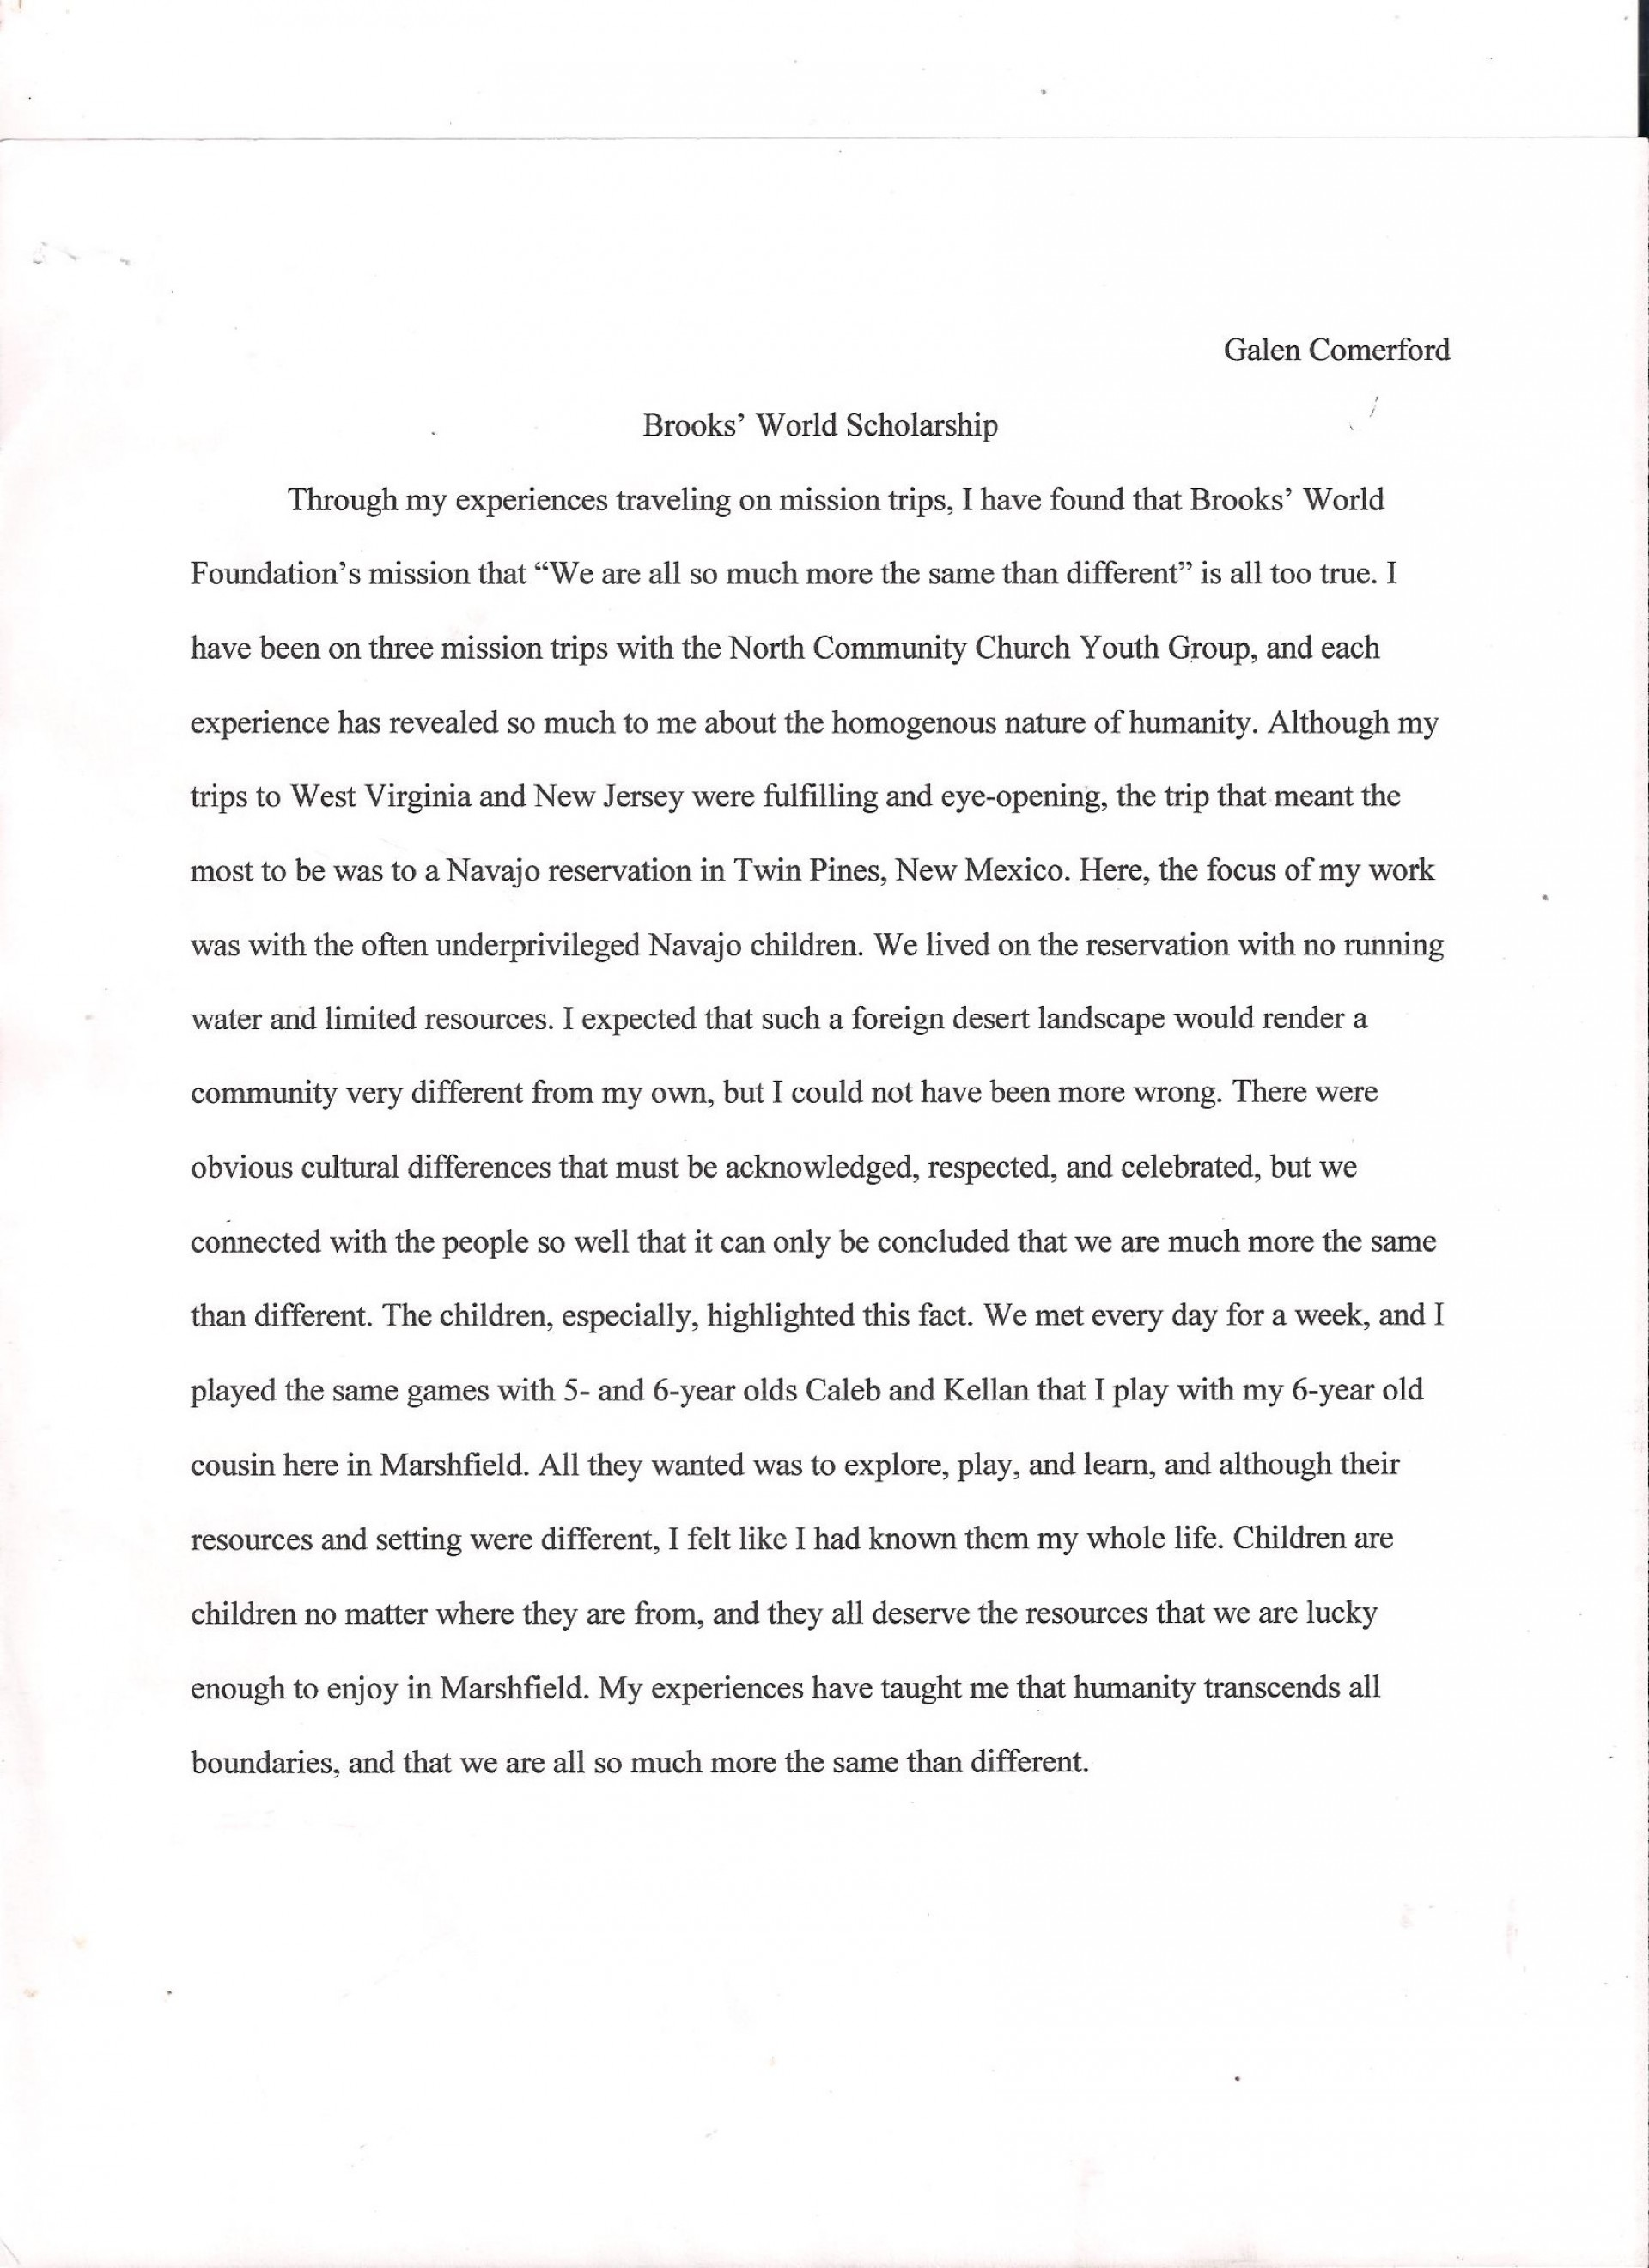 006 Scholarship Essay Examples About Career Goals Example Imposing Pdf 1920